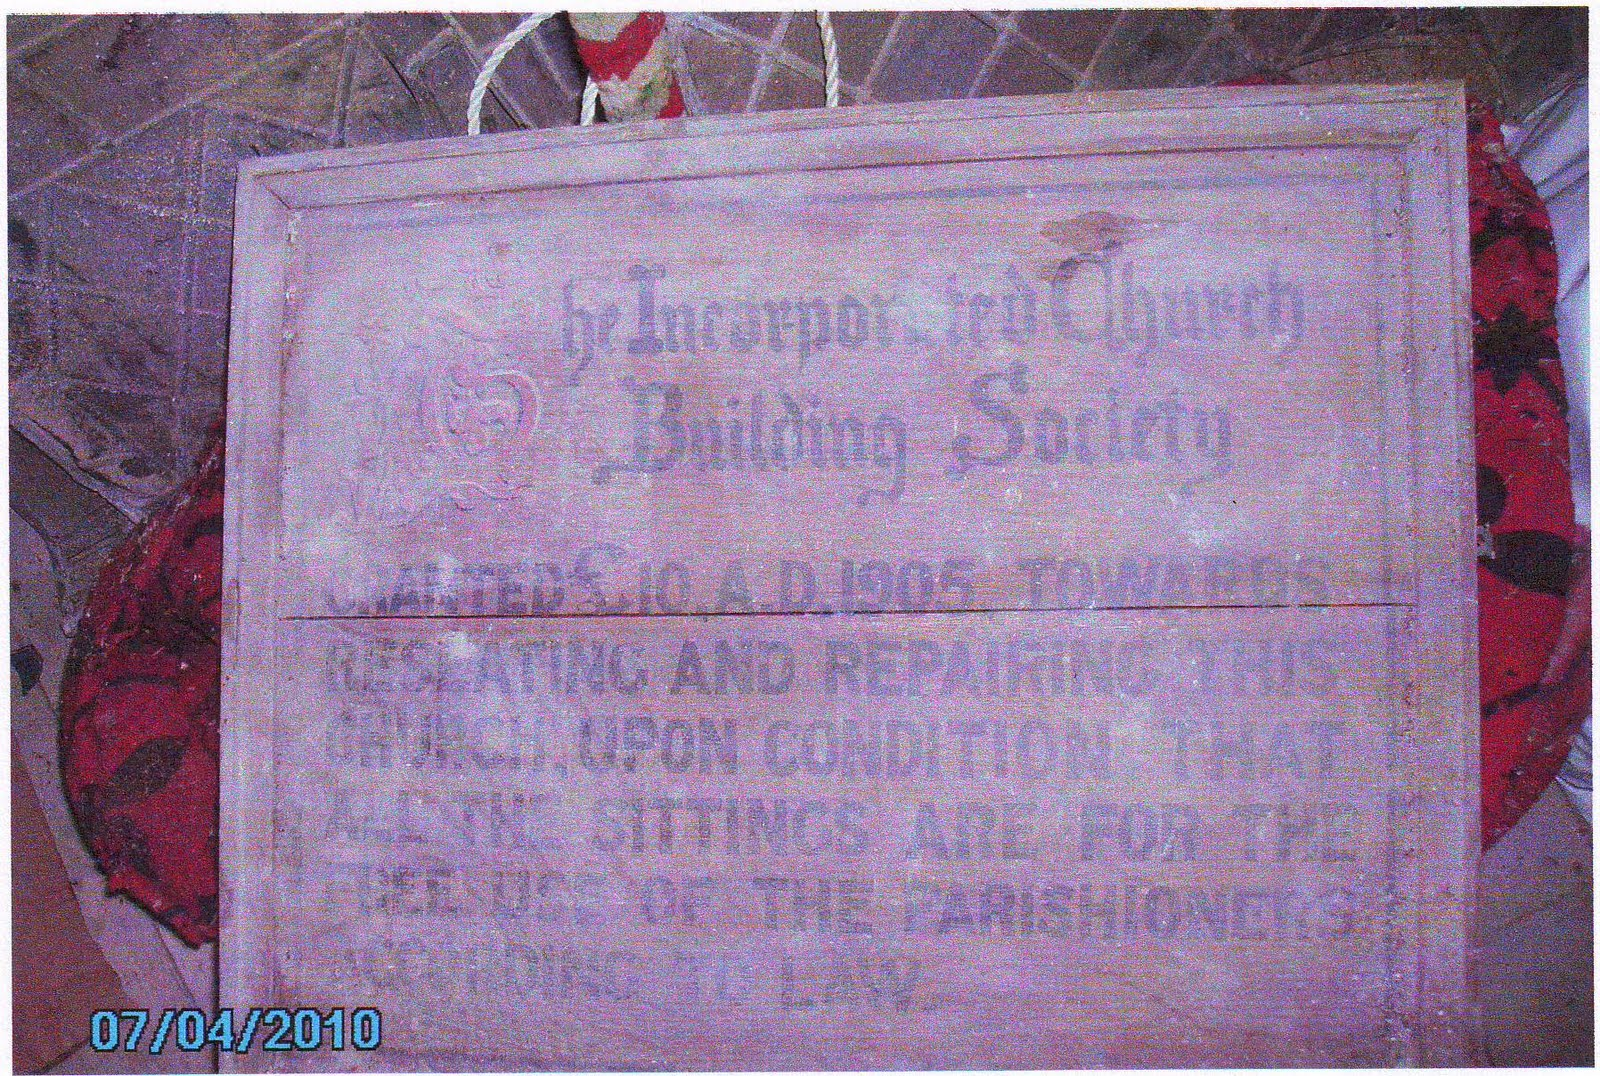 1905 25th March A Parish Meeting was